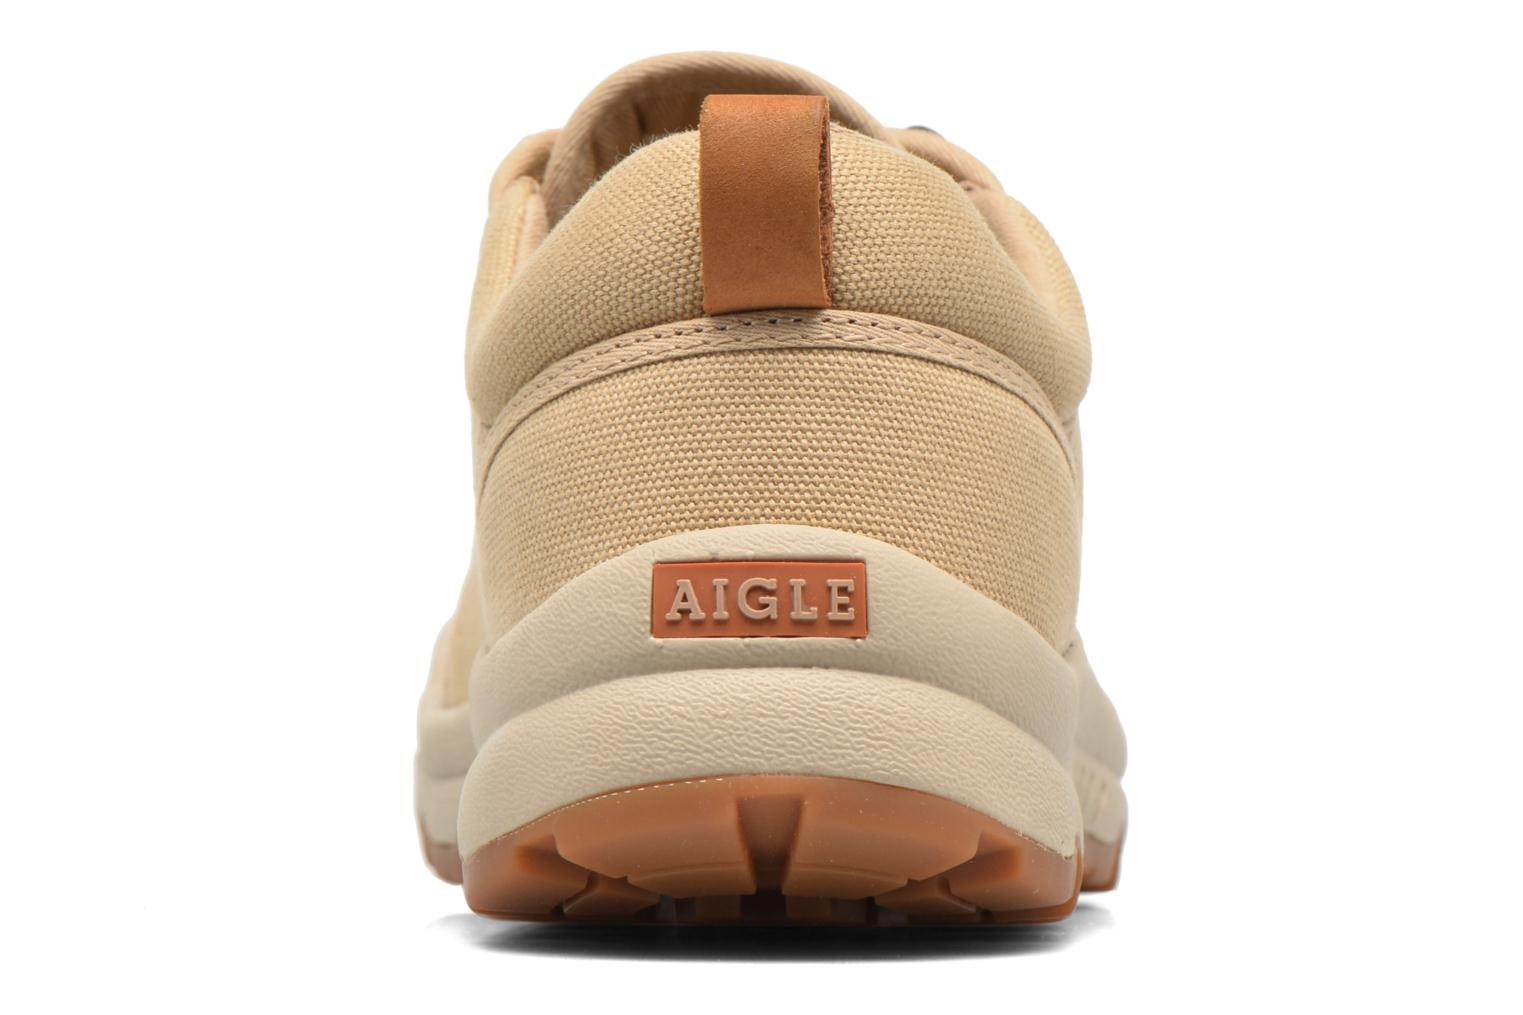 Baskets Aigle Tenere Light Low Cvs Beige vue droite